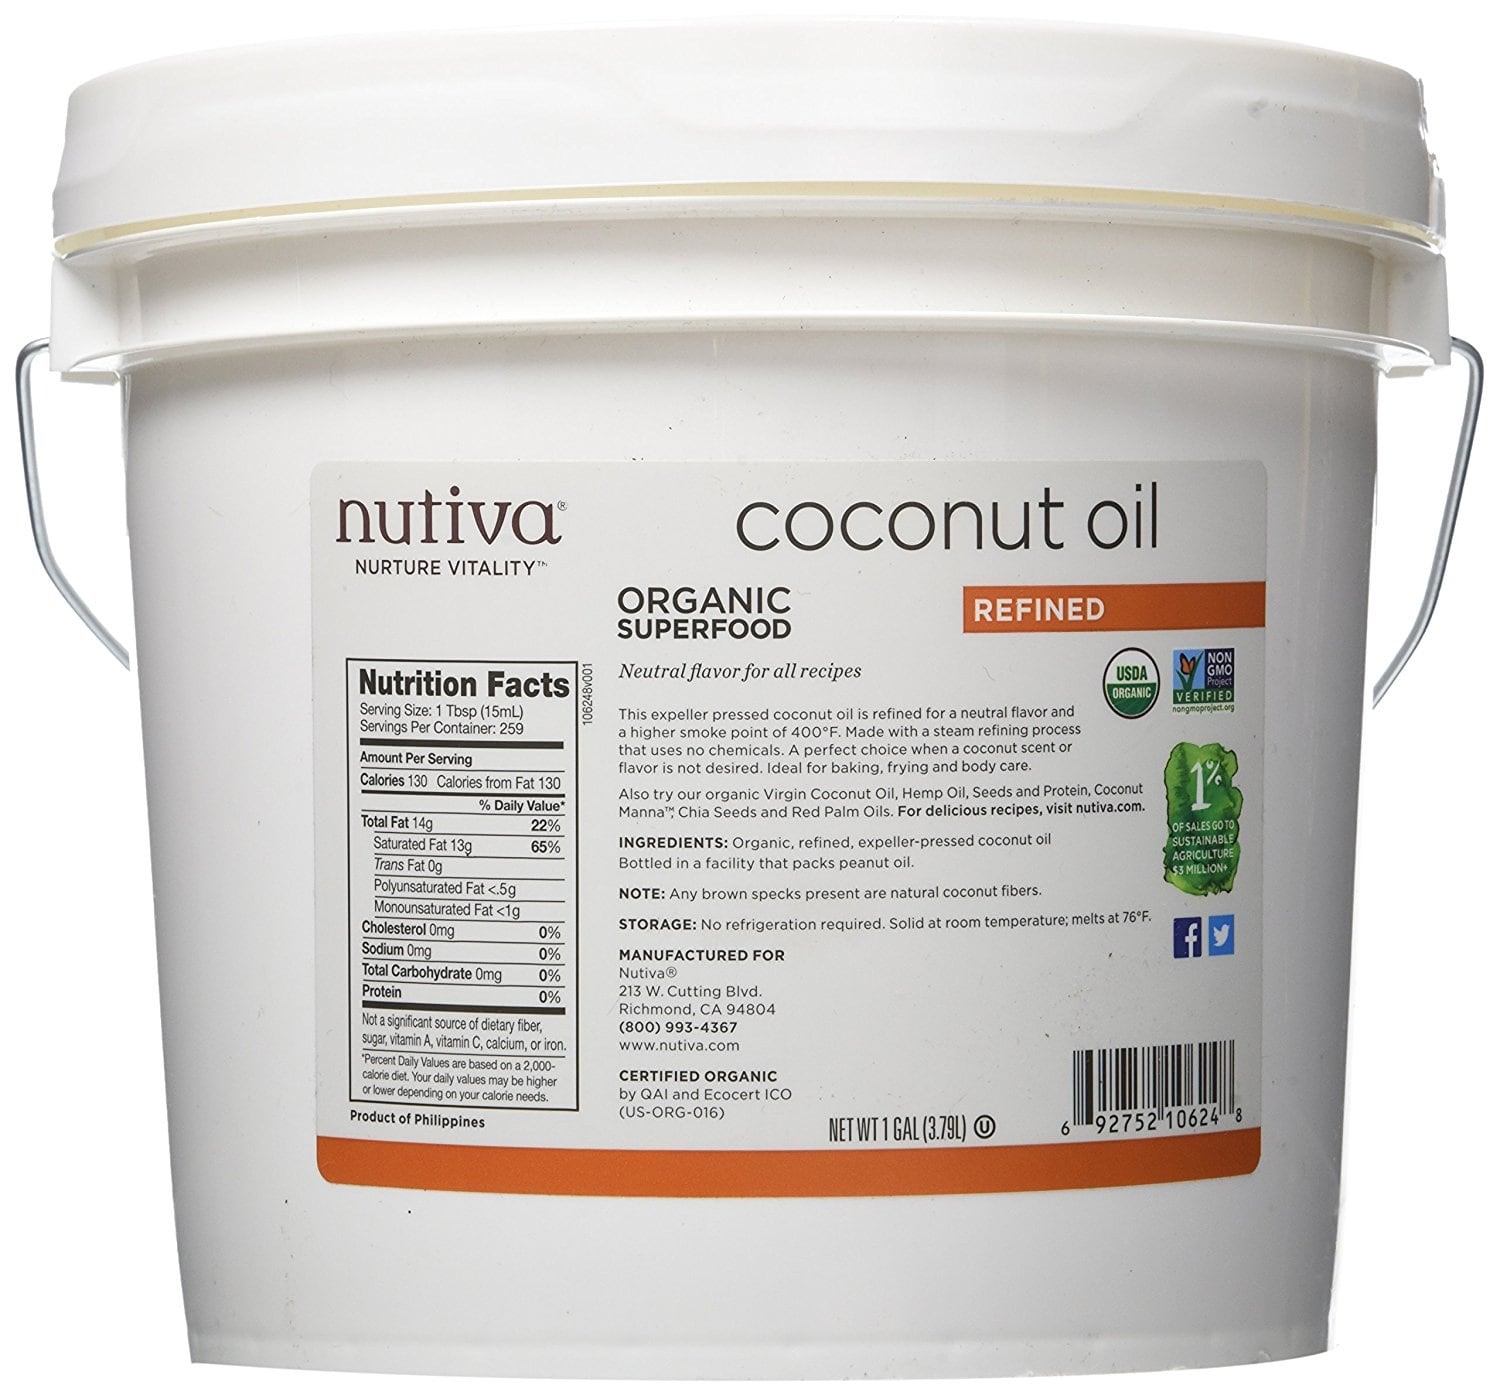 1 Gallon Nutiva Organic Refined Coconut Oil $18.79 FS for prime members